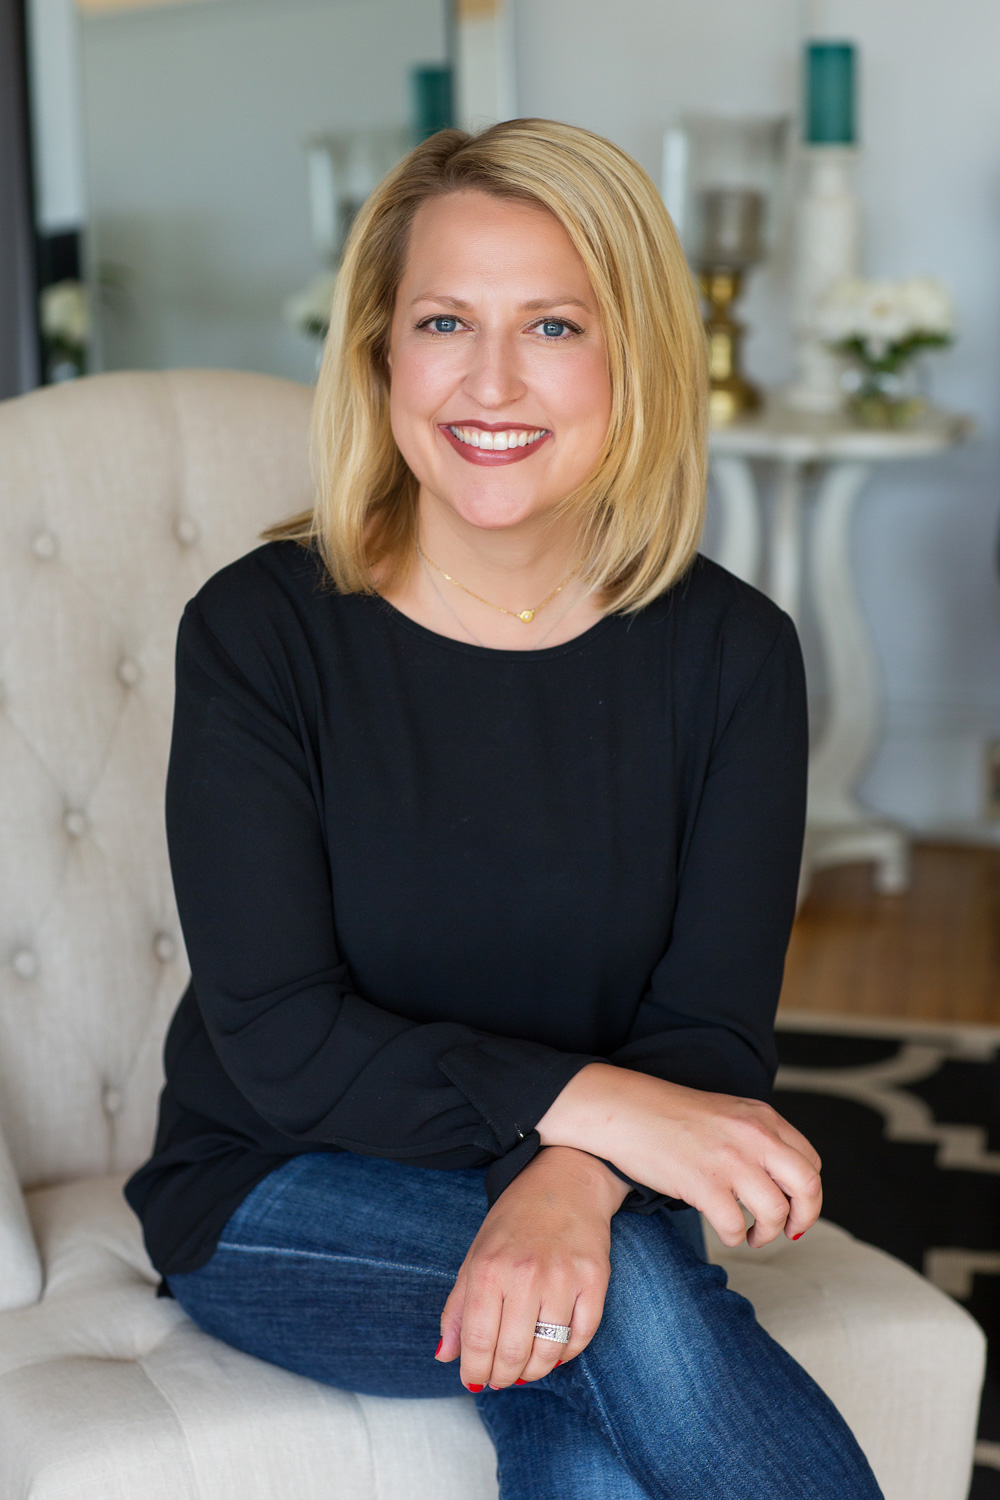 Christine Marvin, Director of Corporate Strategy + Design at Marvin Windows and Doors. Photo Courtesy of Marvin.